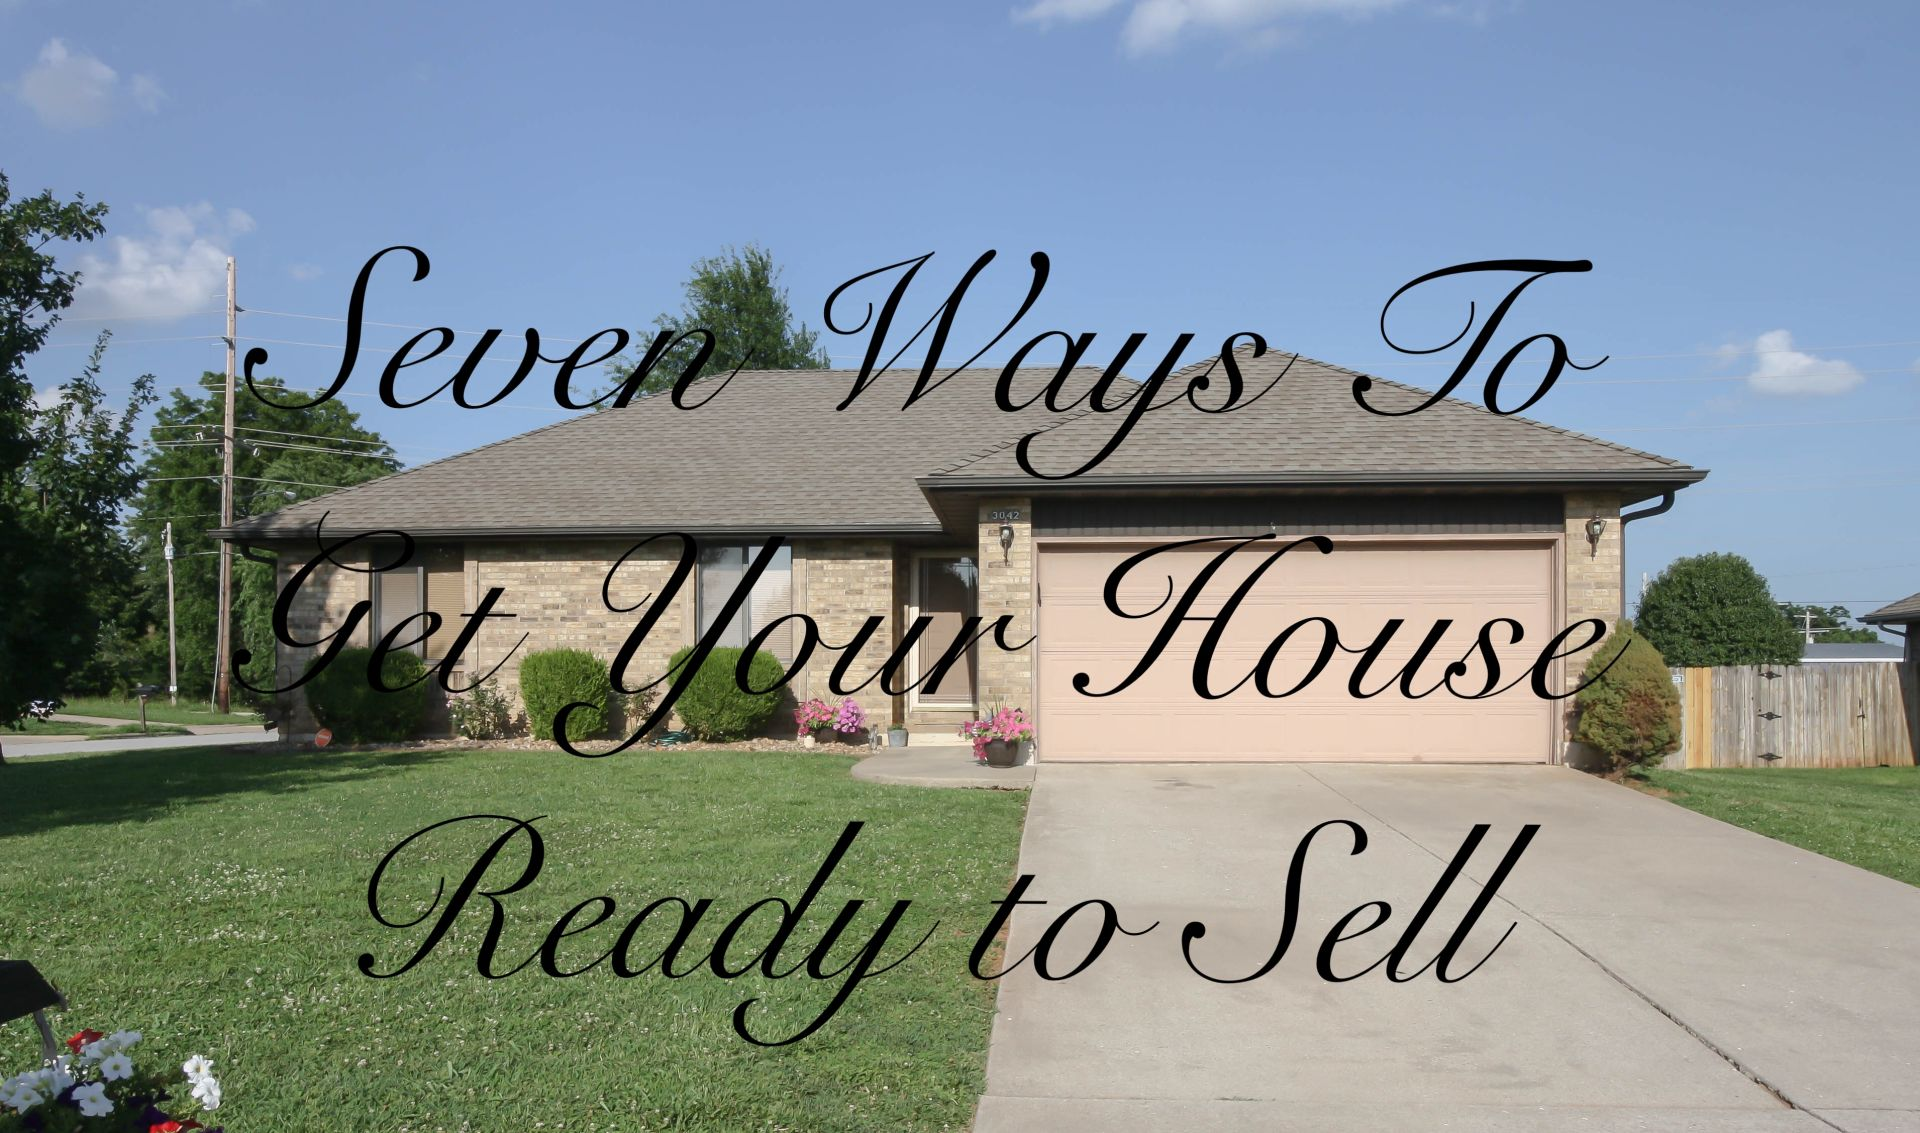 The Seven Top Ways to Get Your House Ready to Sell